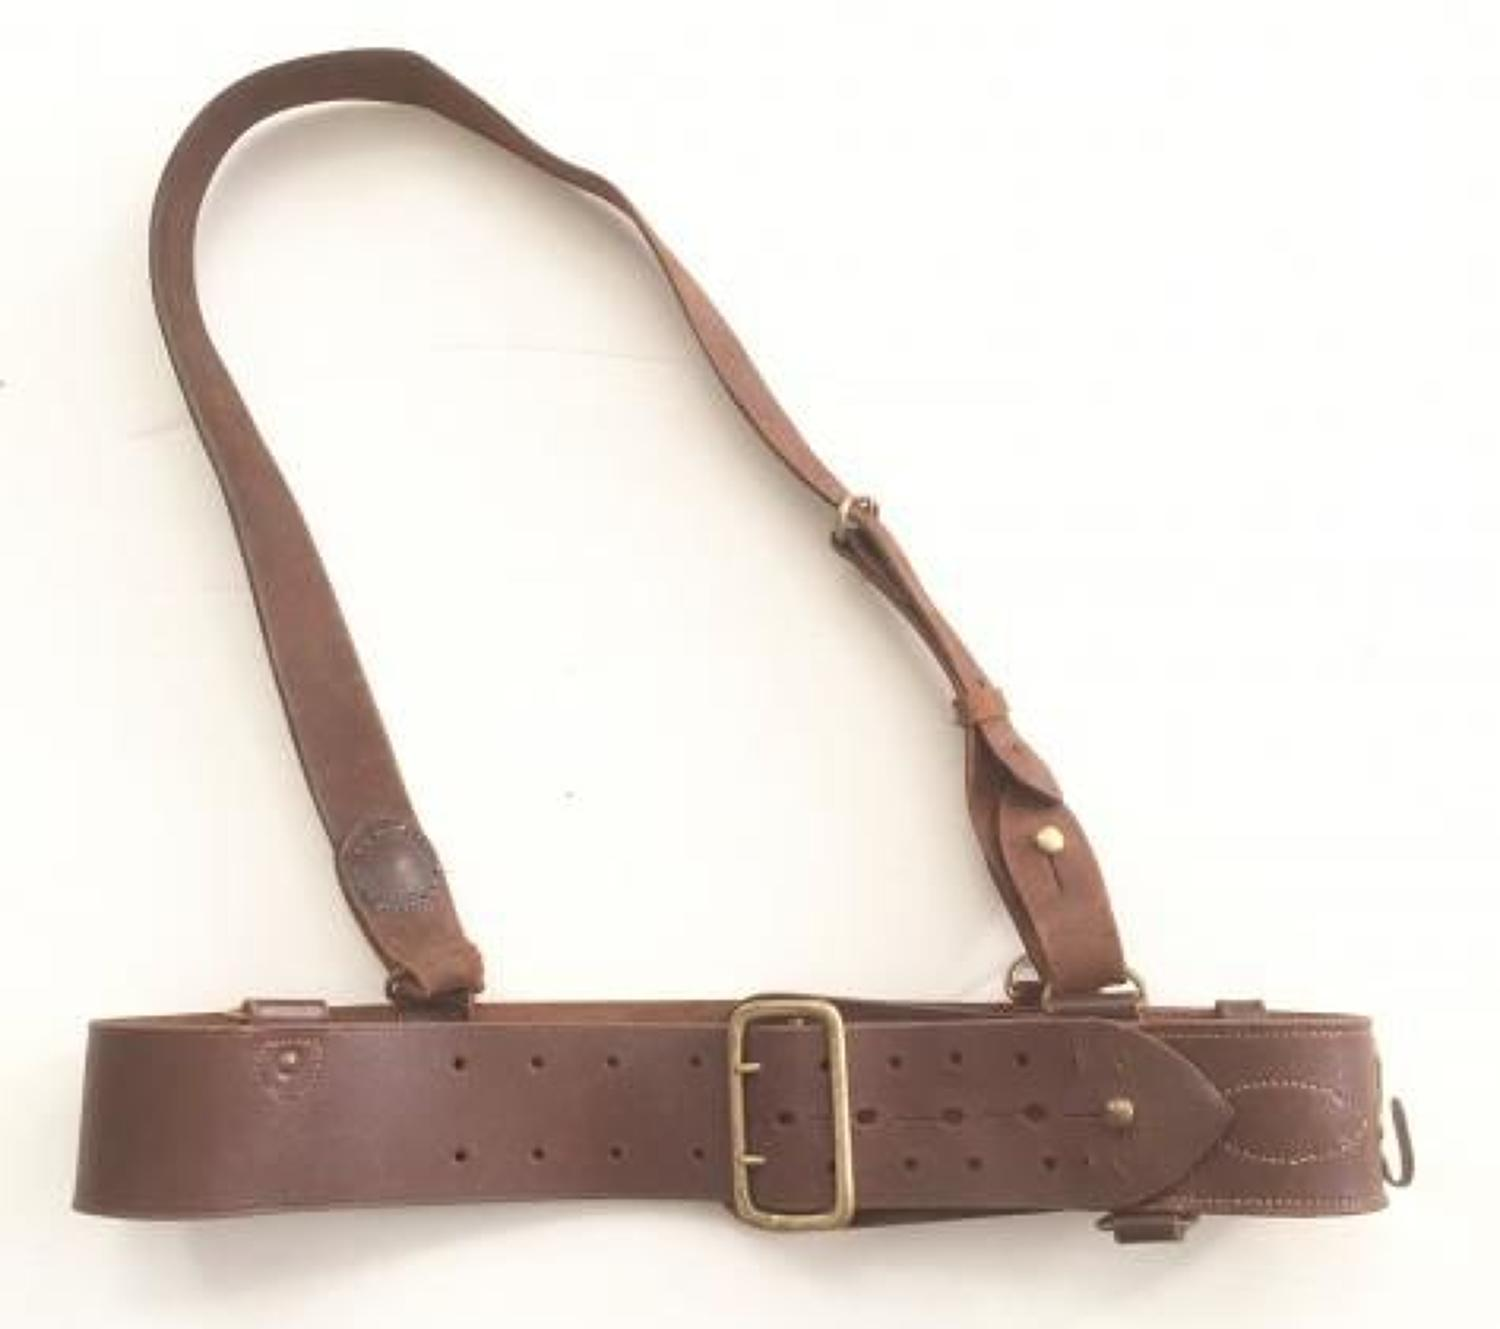 WW2 Period British Officer's Sam Brown Belt and Brace strap.